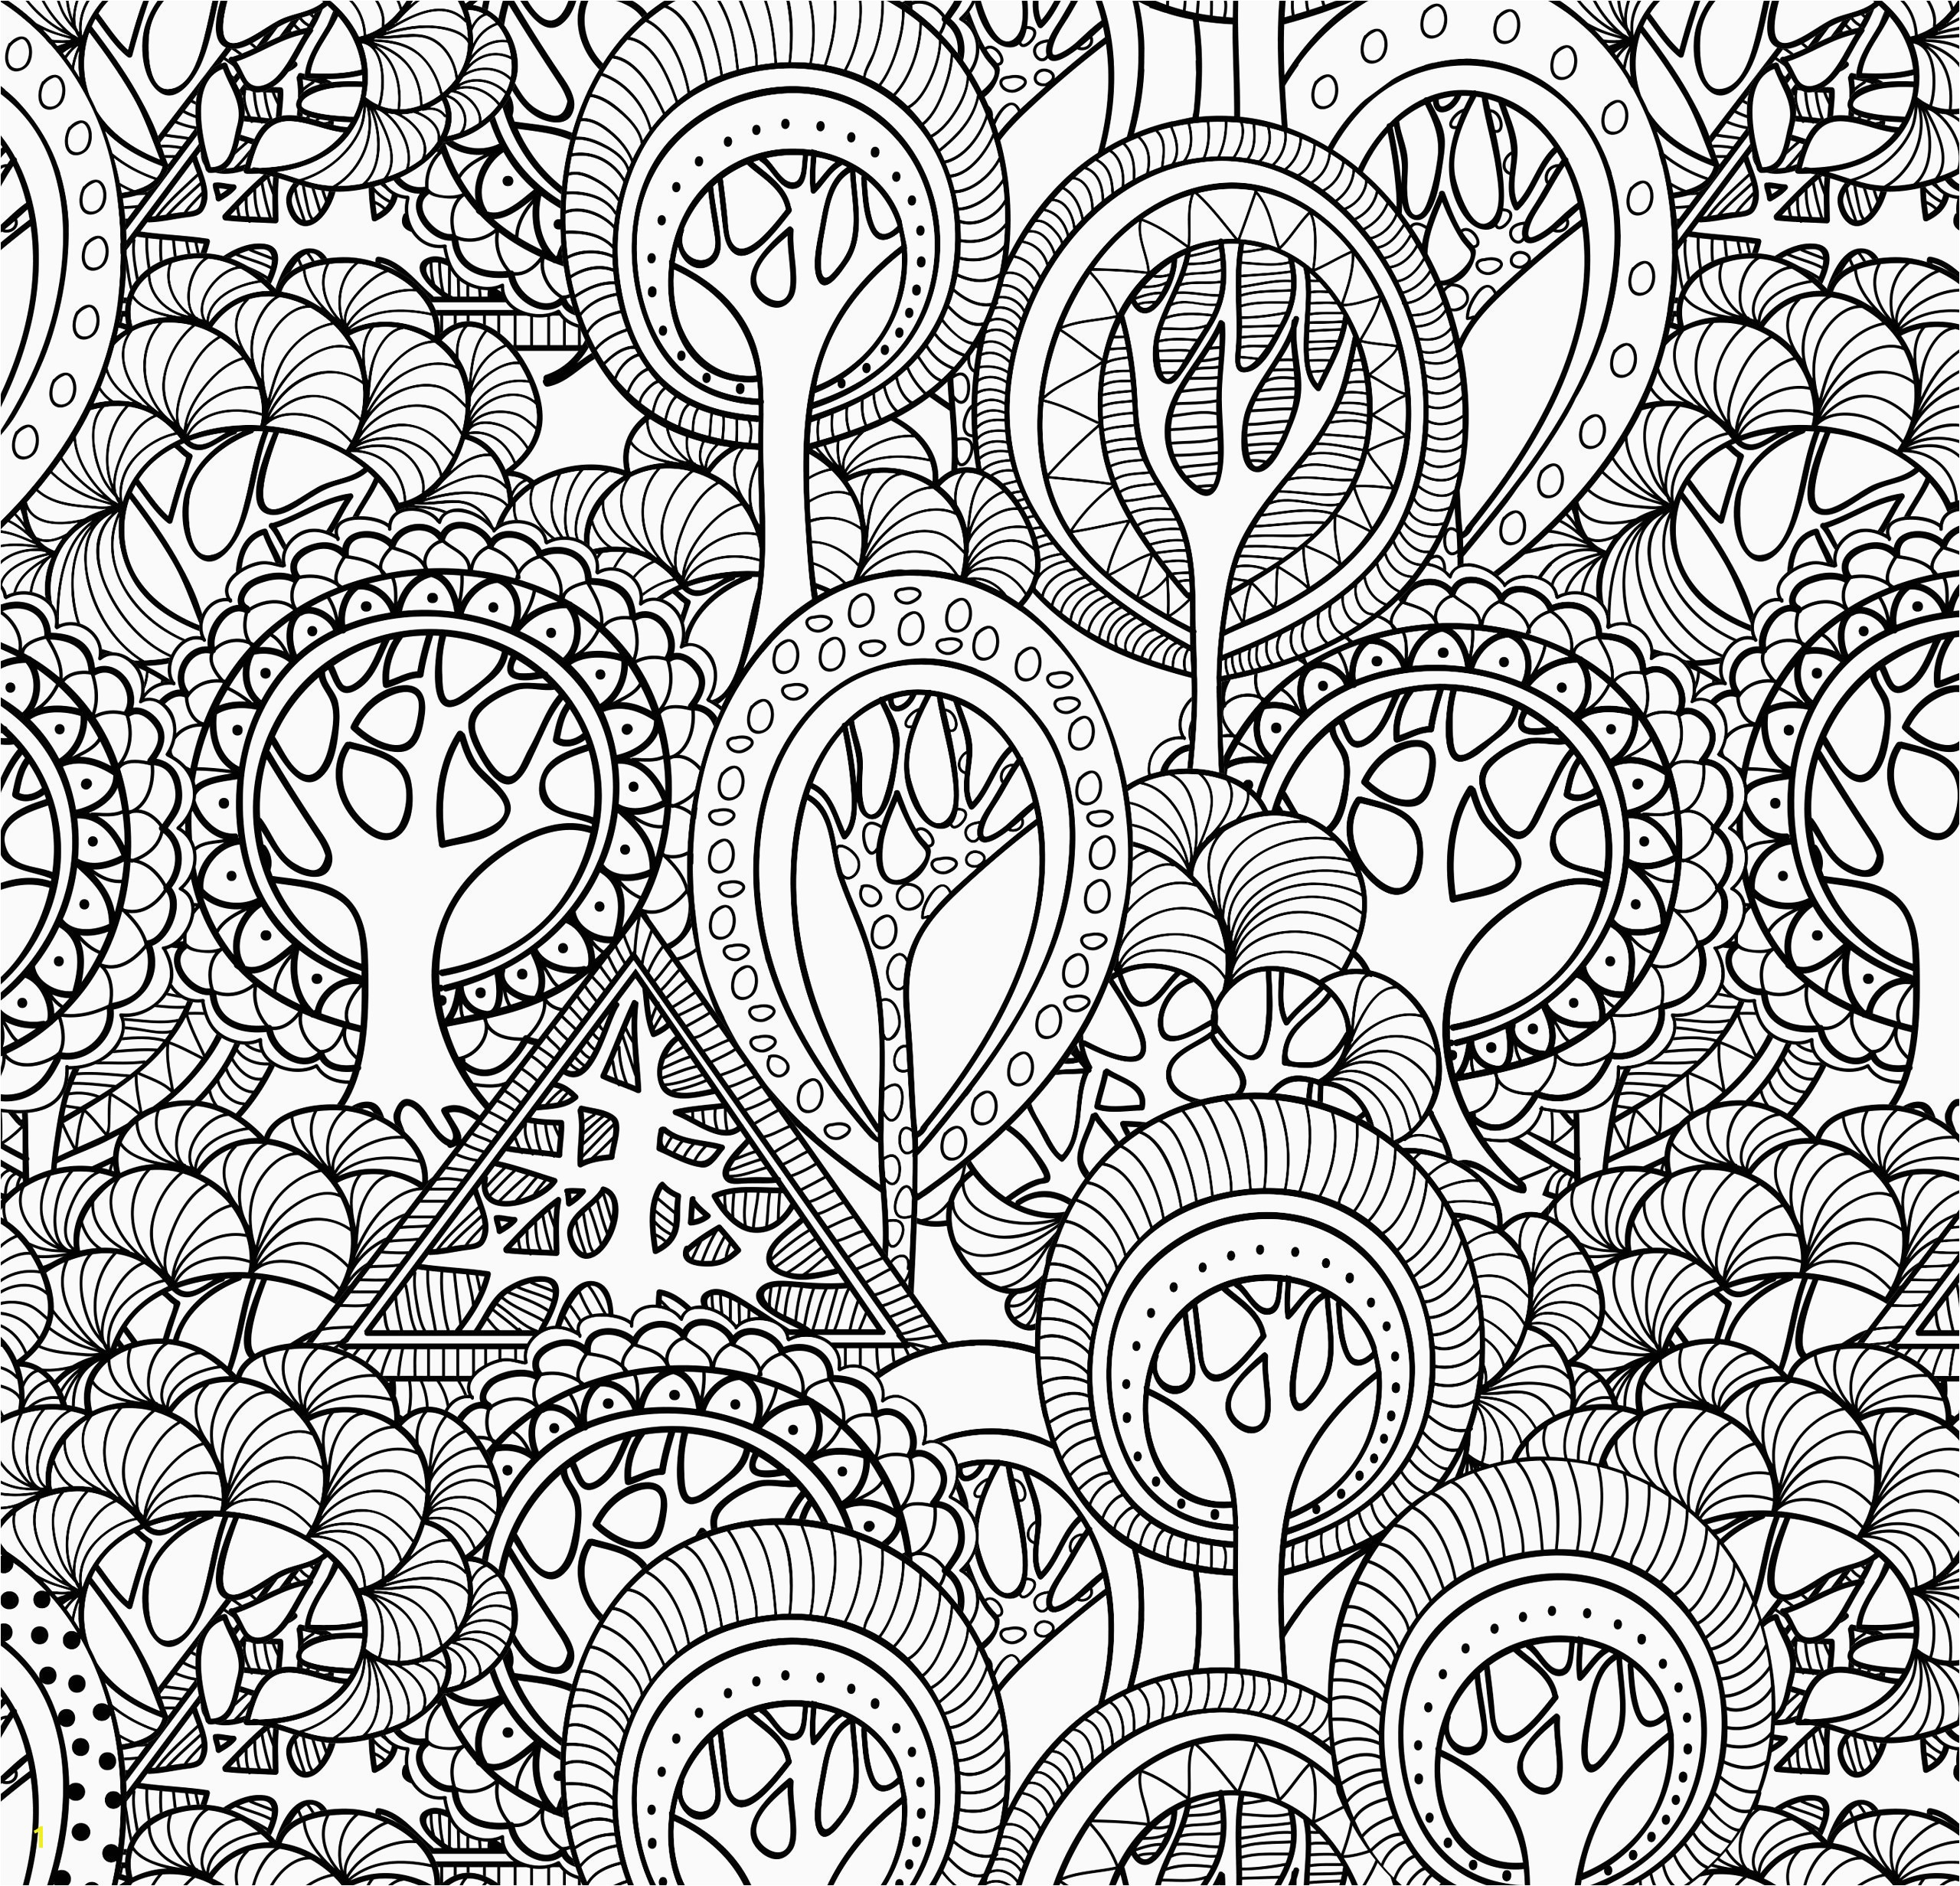 Coloring Pages For Adults Abstract Fun Things To Color Luxury Hair Coloring Pages New Line Coloring 0d